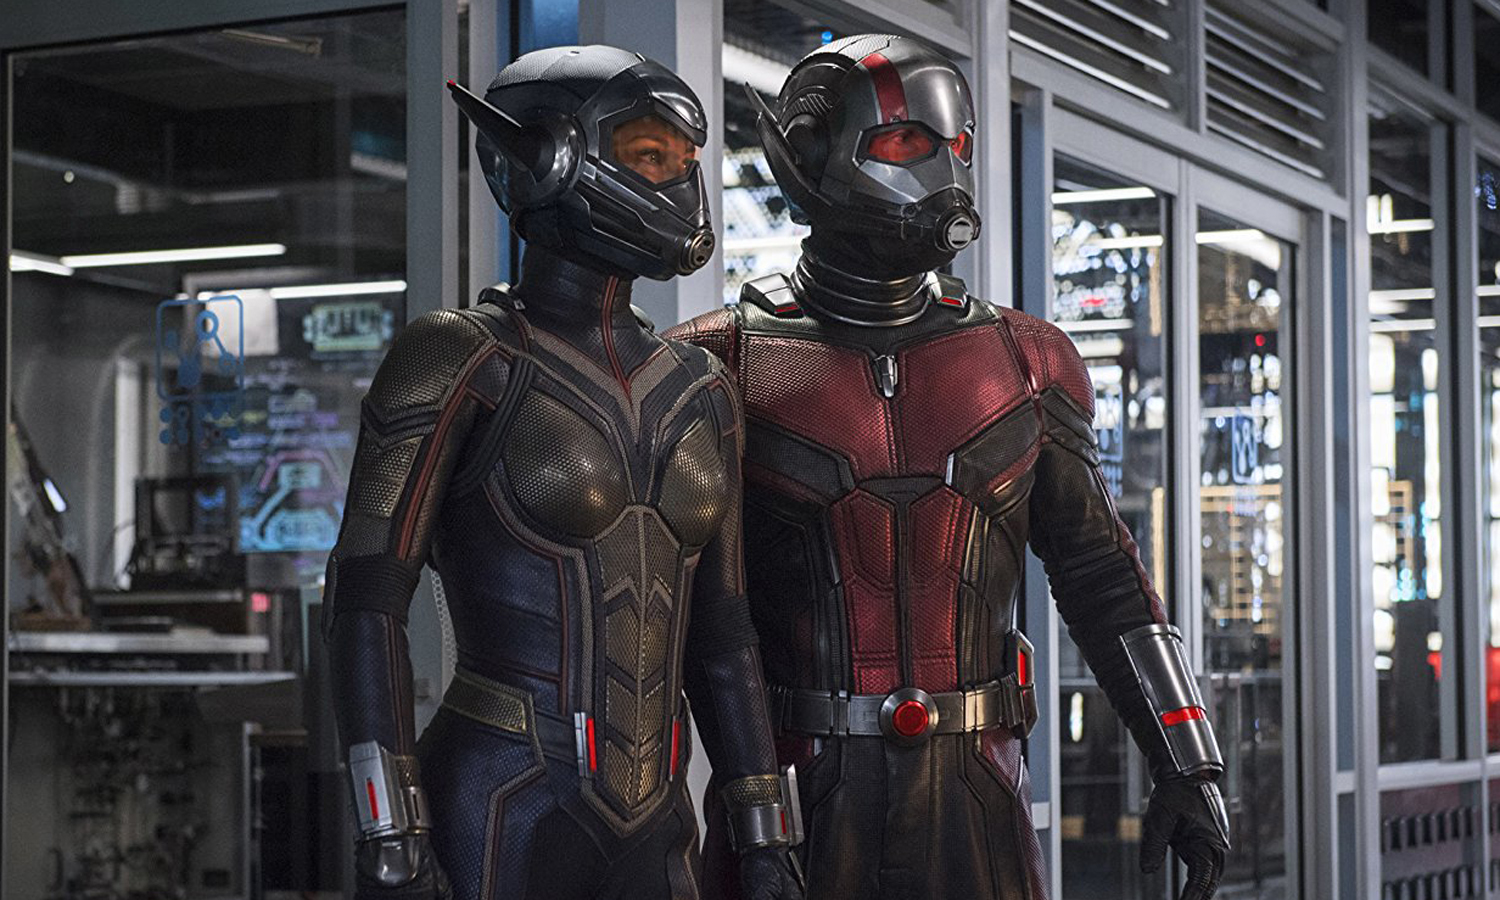 'Ant-Man and the Wasp' trailer shows Evangeline Lilly kicking butt